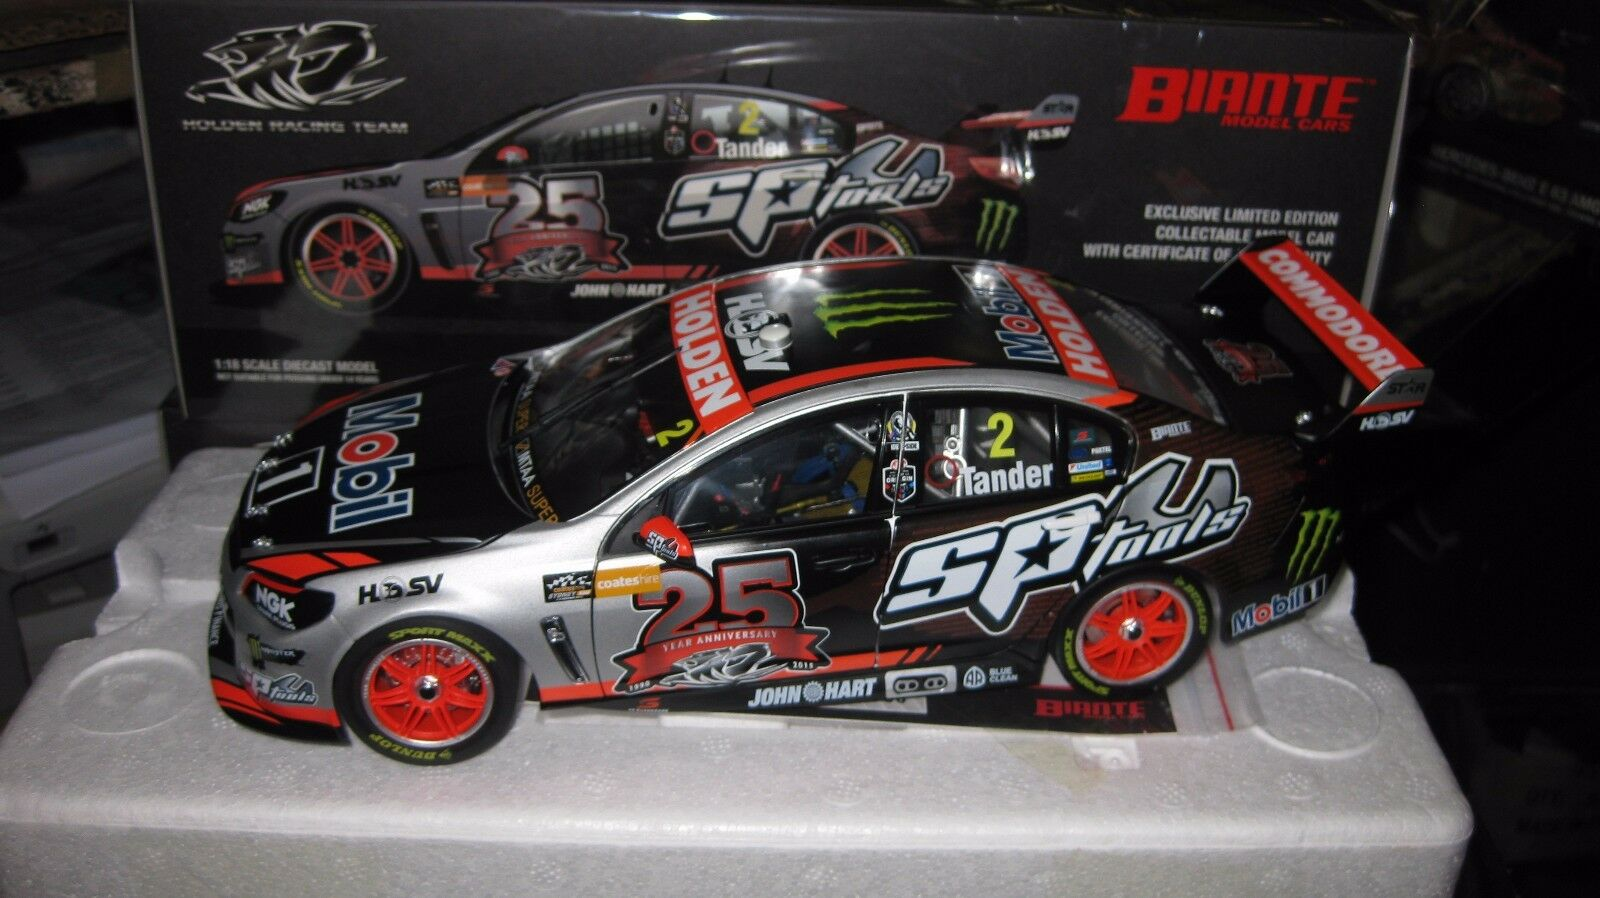 BIANTE 1 18 G TANDER HOLDEN COMMODORE 2015 V8 SUPERCAR SYDNEY 25th ANNIVERSARY